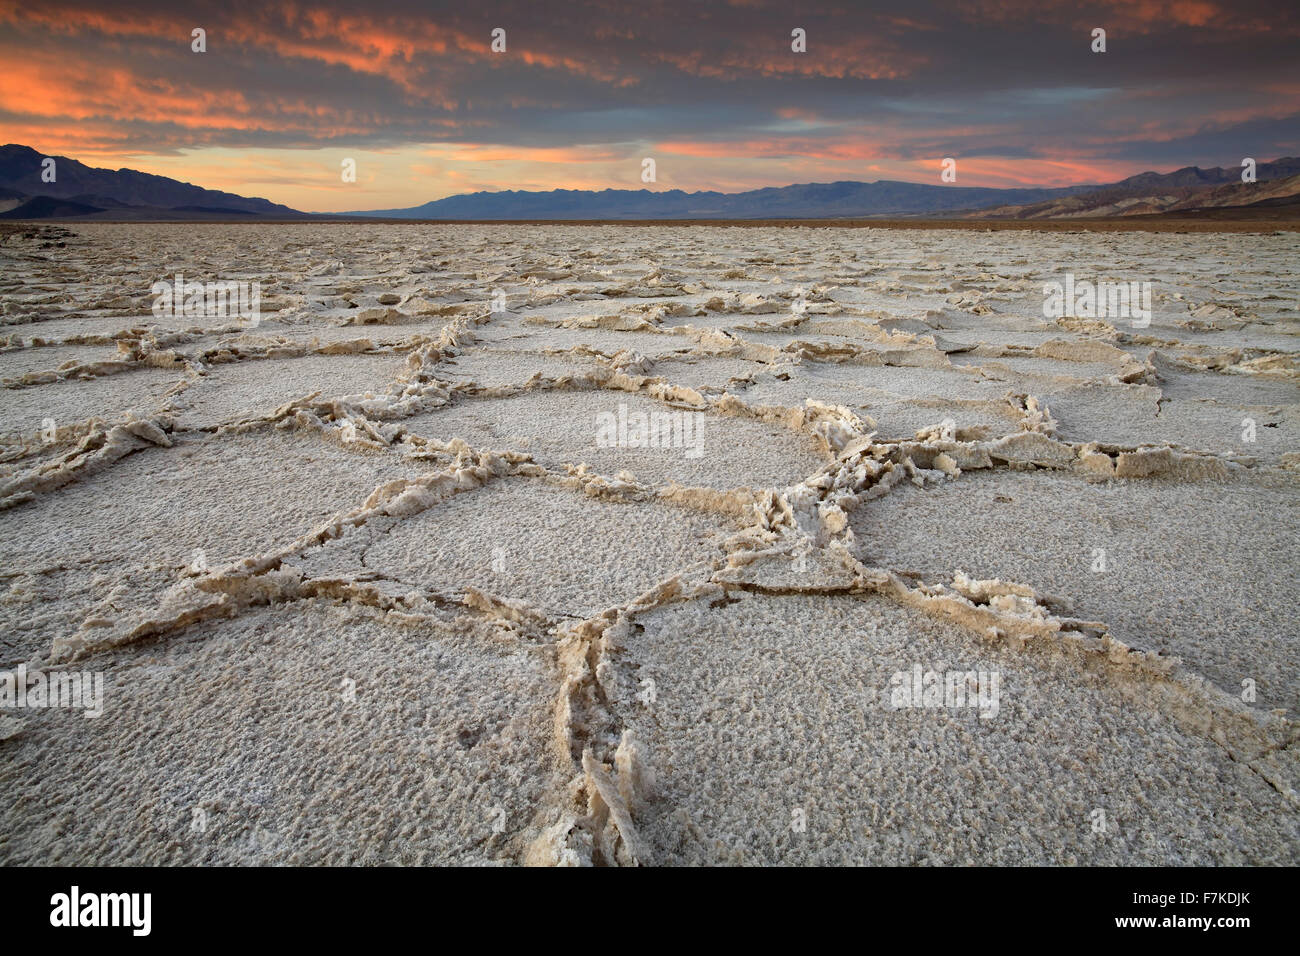 Cracked salt pans at sunset, Badwater Basin, Death Valley National Park, California USA - Stock Image